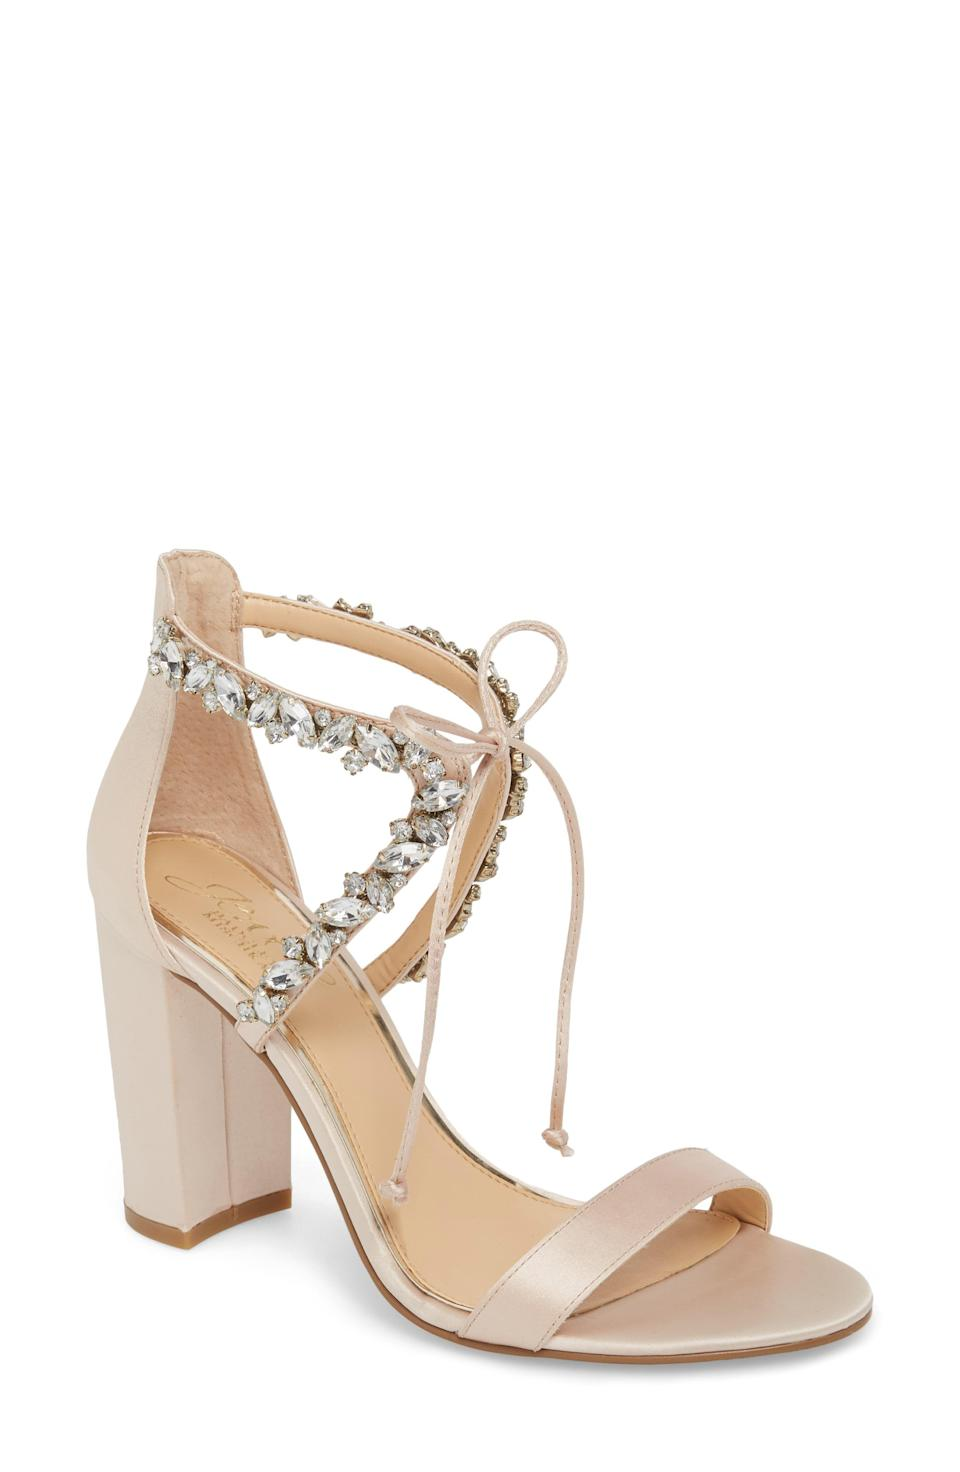 """<p><strong>JEWEL BADGLEY MISCHKA</strong></p><p>nordstrom.com</p><p><strong>$109.00</strong></p><p><a href=""""https://go.redirectingat.com?id=74968X1596630&url=https%3A%2F%2Fwww.nordstrom.com%2Fs%2Fjewel-badgley-mischka-thamar-embellished-sandal-women%2F4887682&sref=https%3A%2F%2Fwww.thepioneerwoman.com%2Ffashion-style%2Fg36122557%2Fcomfortable-wedding-shoes%2F"""" rel=""""nofollow noopener"""" target=""""_blank"""" data-ylk=""""slk:Shop Now"""" class=""""link rapid-noclick-resp"""">Shop Now</a></p><p>The ankle tie is much more flexible and stylish than a normal strap, especially when combined with gorgeous jewels. Pick from the champagne shade, black, or silver options available.</p>"""